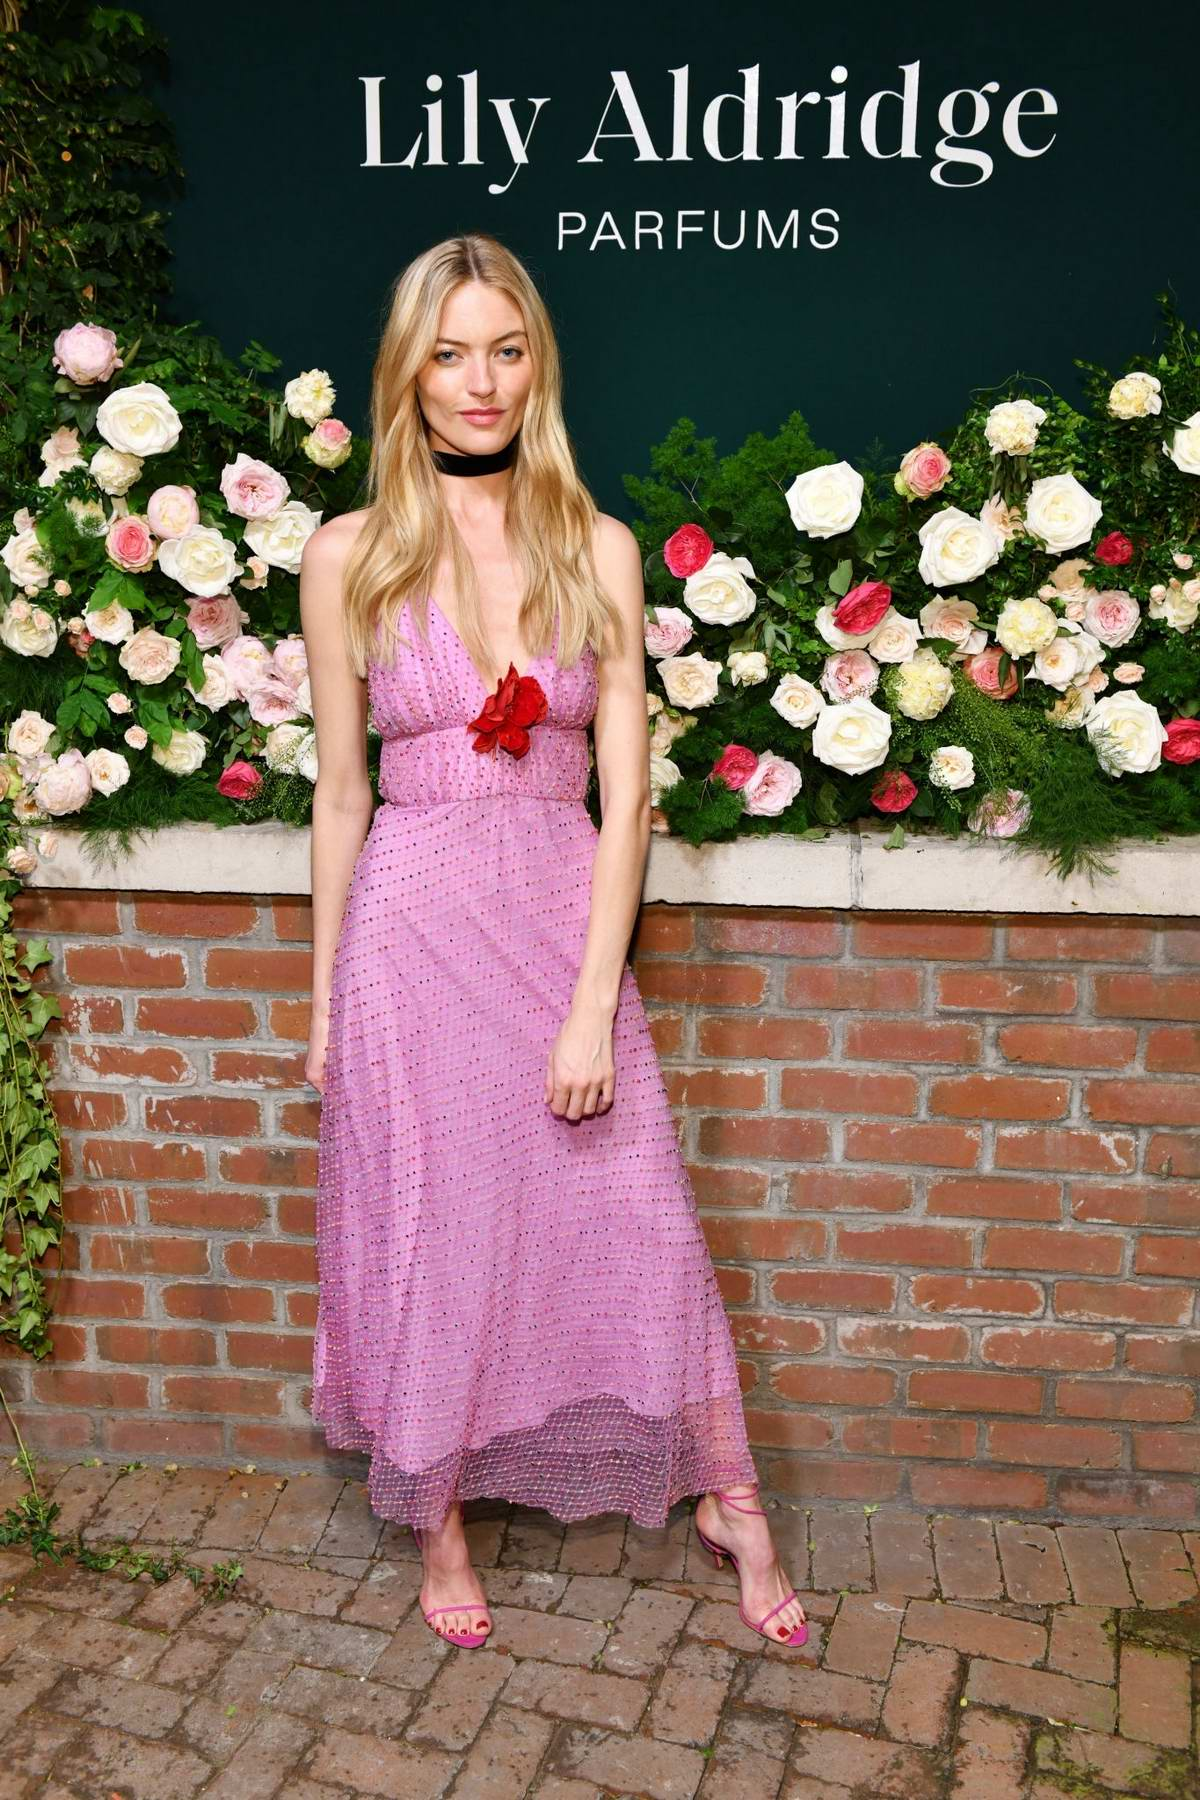 Martha Hunt attends the 'Lily Aldridge parfums' launch event at The Bowery Terrace in New York City